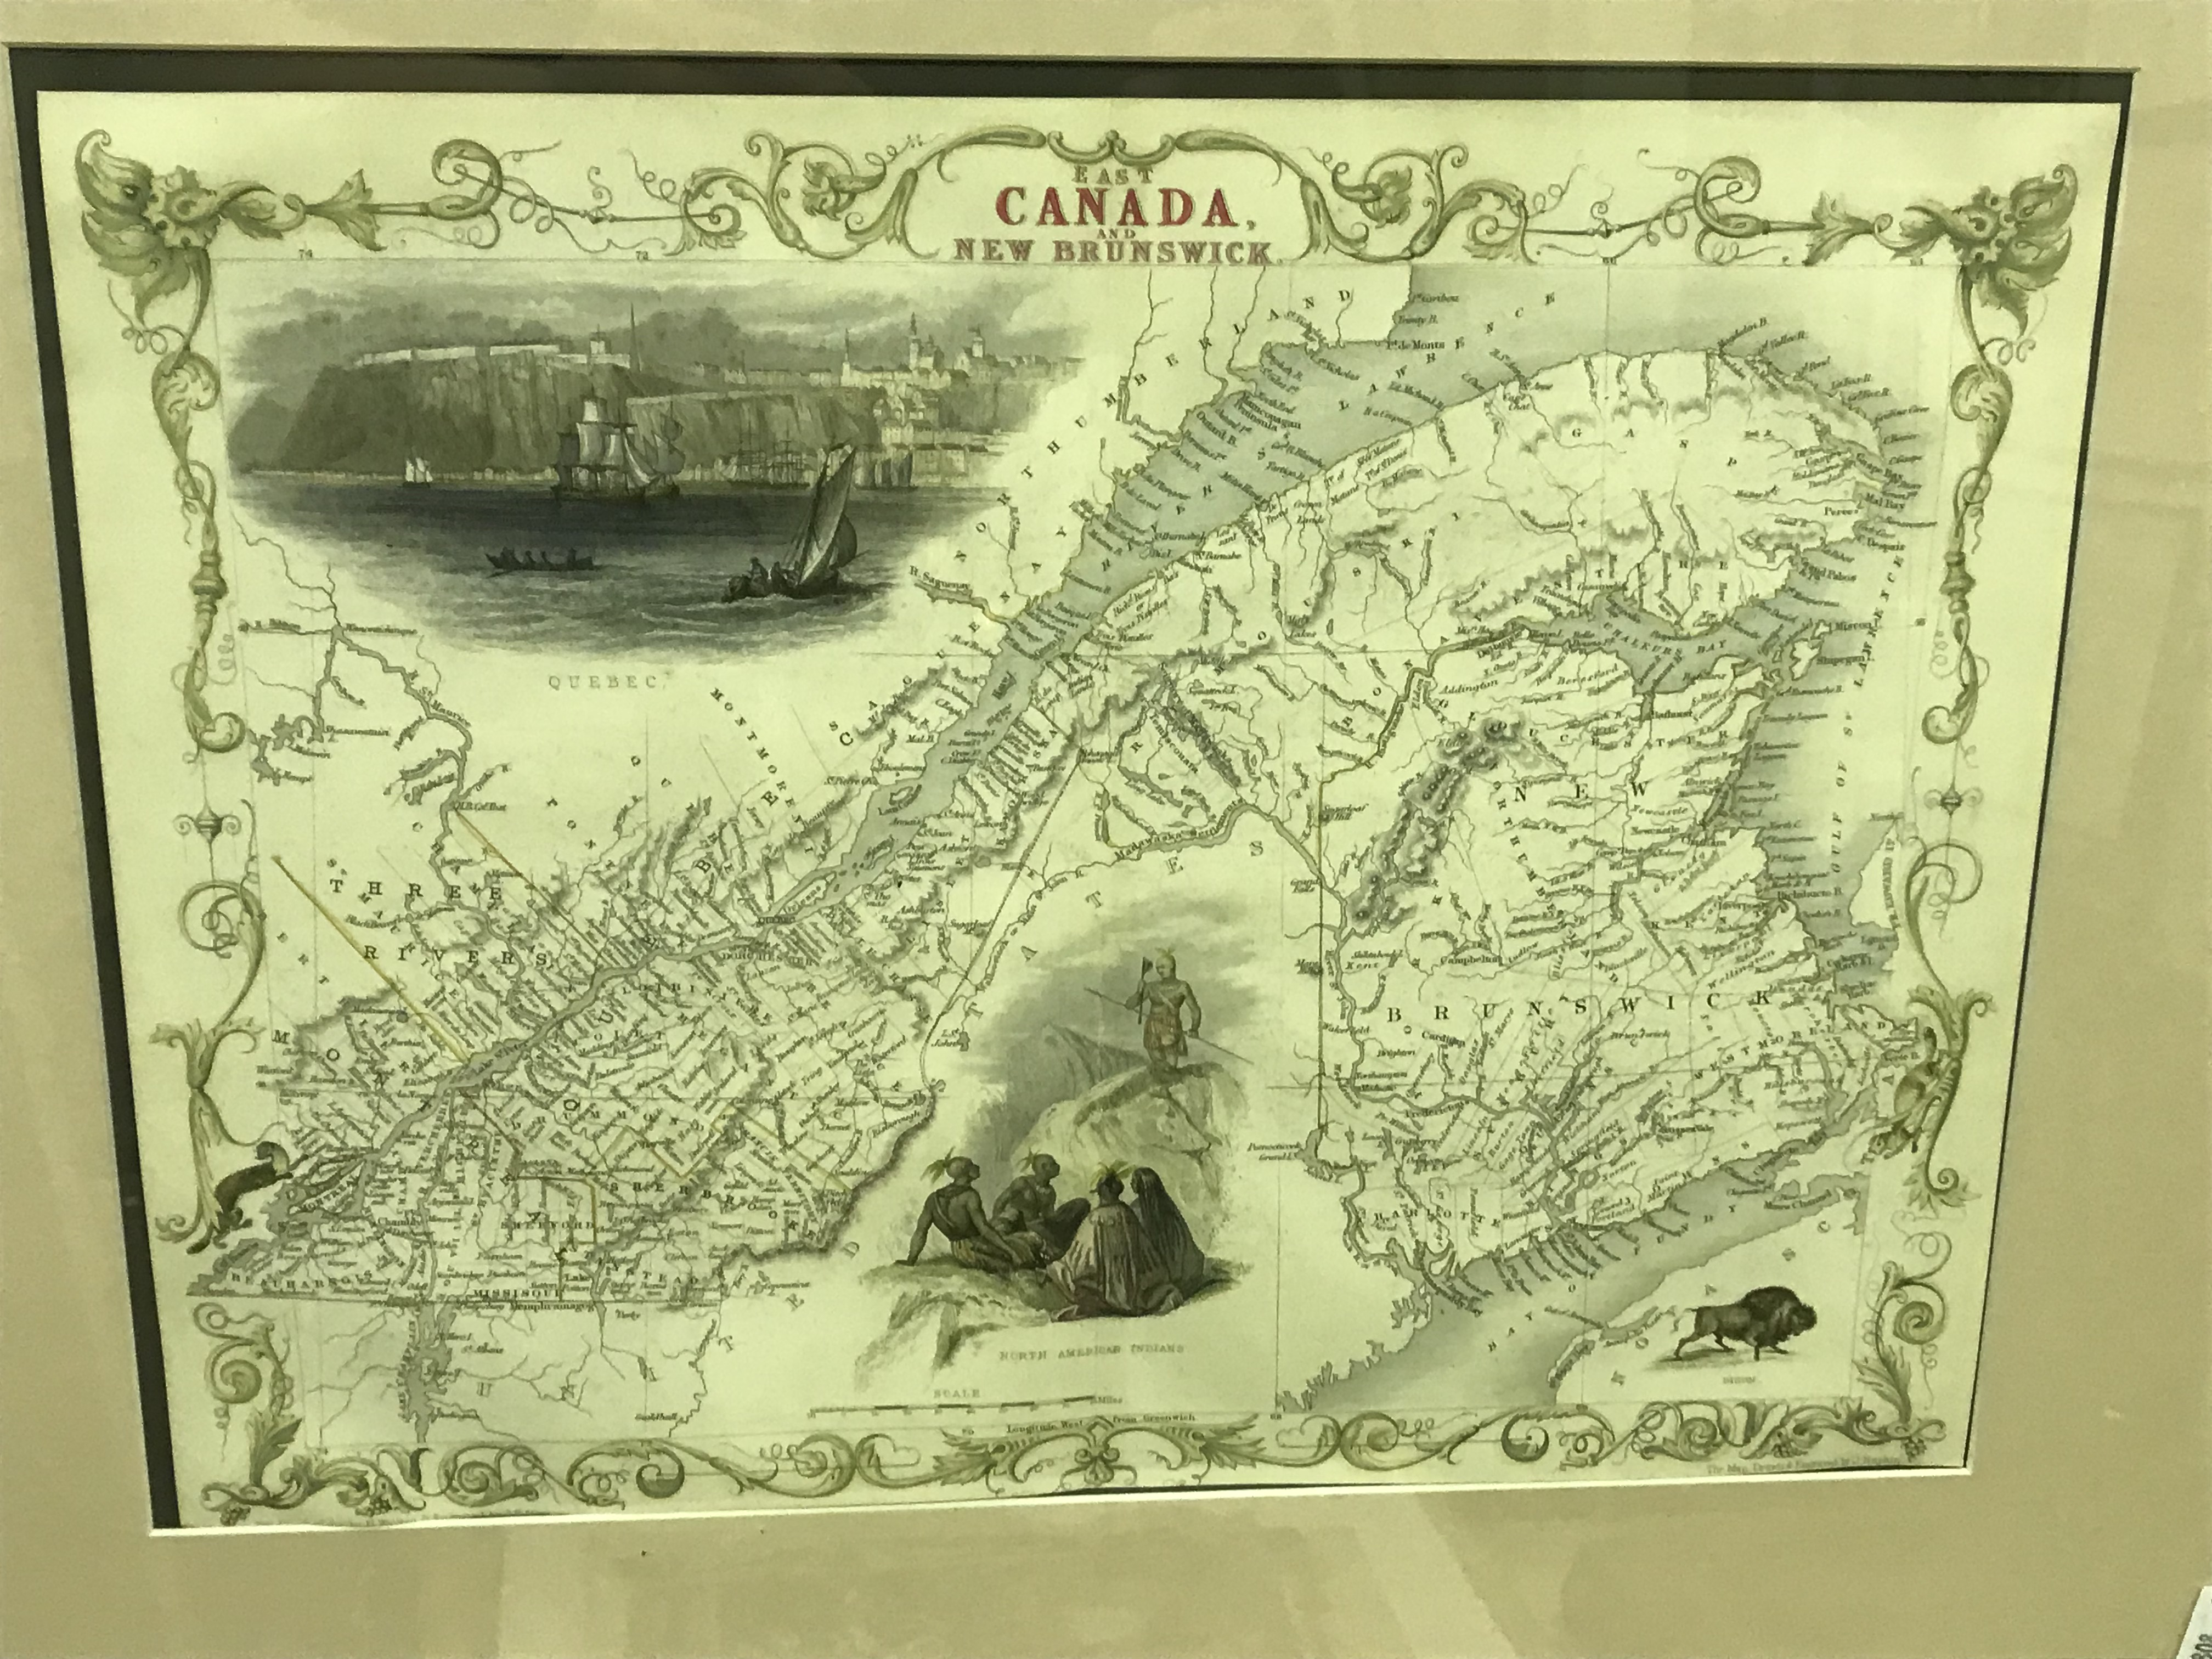 """AFTER J RAPKIN """"Falkland Islands and Patagonia"""" a map, visible image 35.5 cm x 25.5 cm, together - Image 2 of 4"""